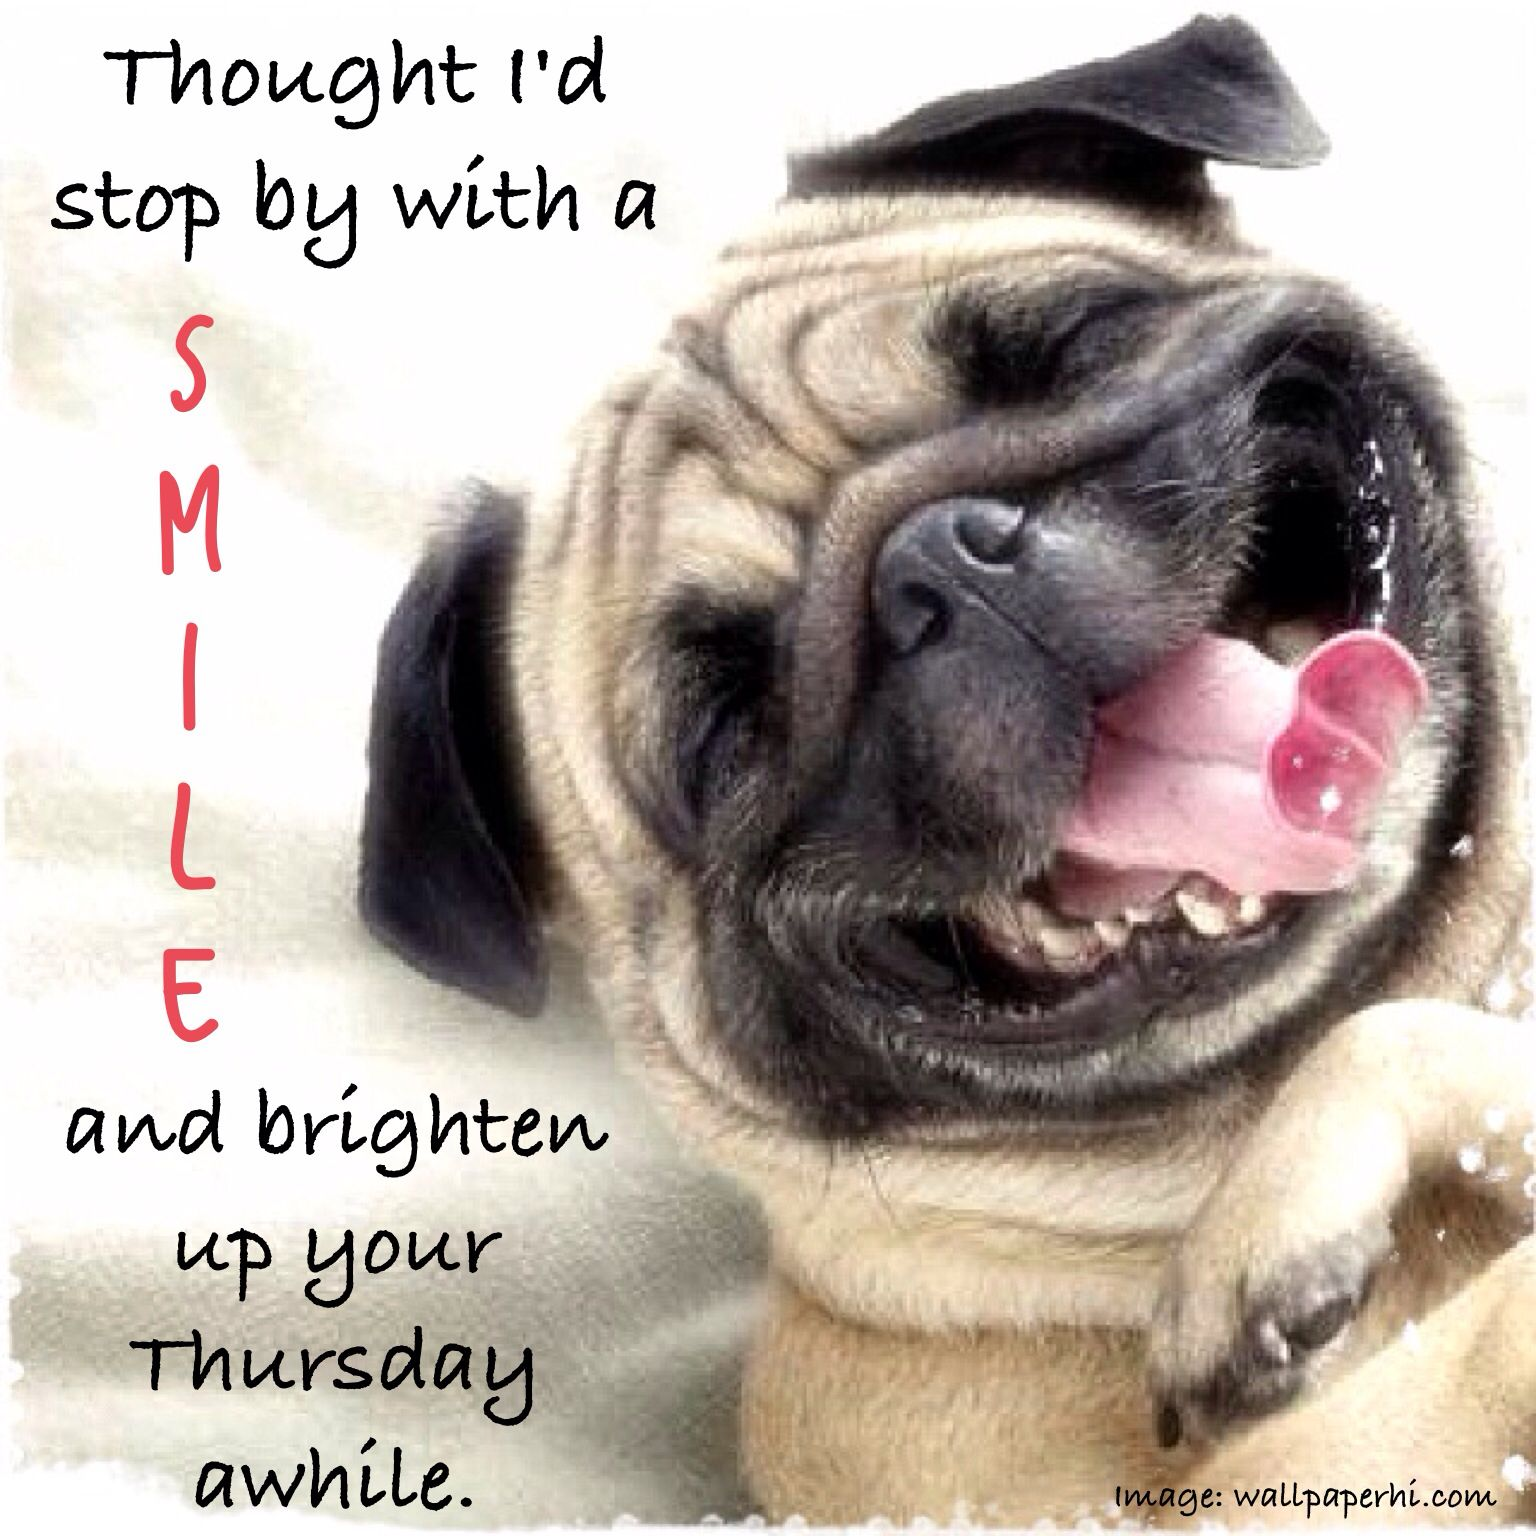 Thursday humor Animal funny Dog silly SMILE Half